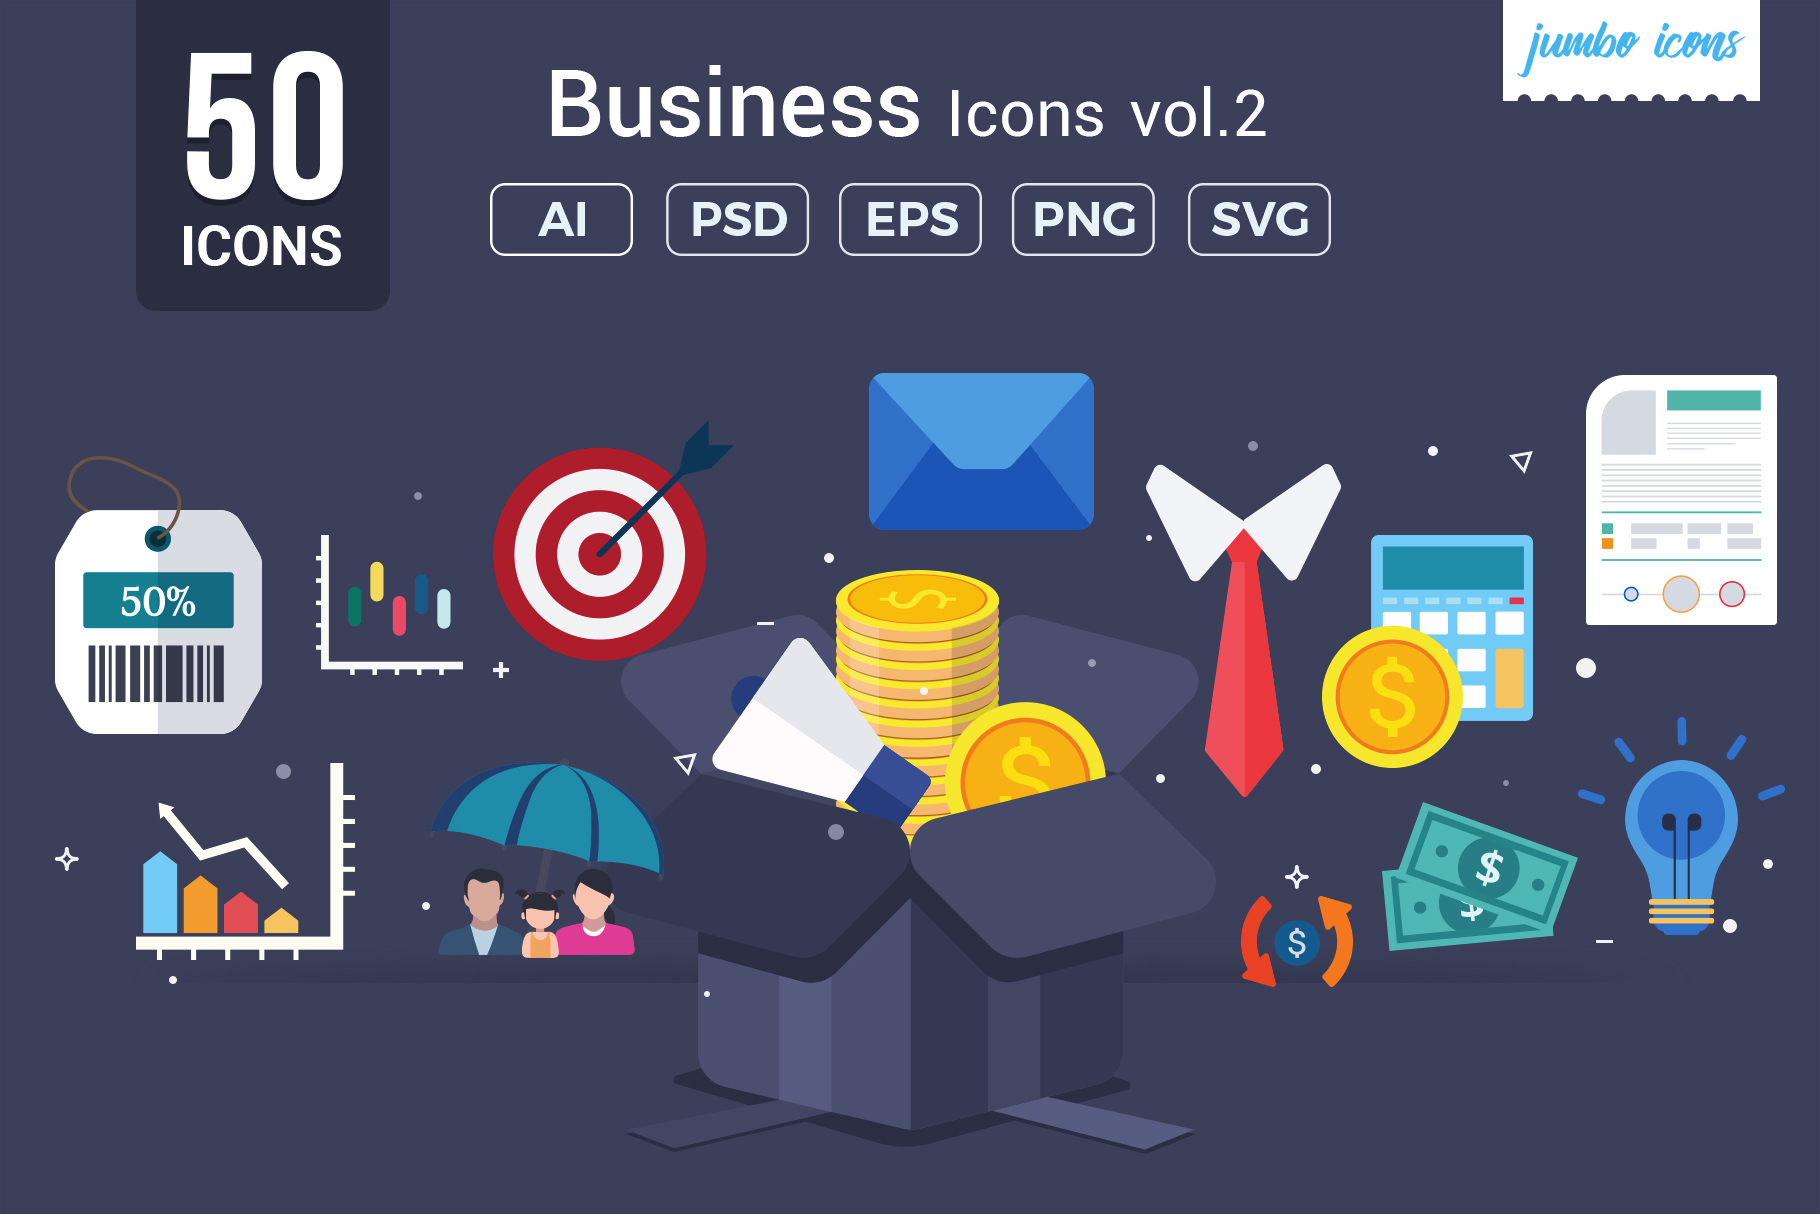 Download Free Business Corporate Vector Icons Graphic By Jumboicons for Cricut Explore, Silhouette and other cutting machines.